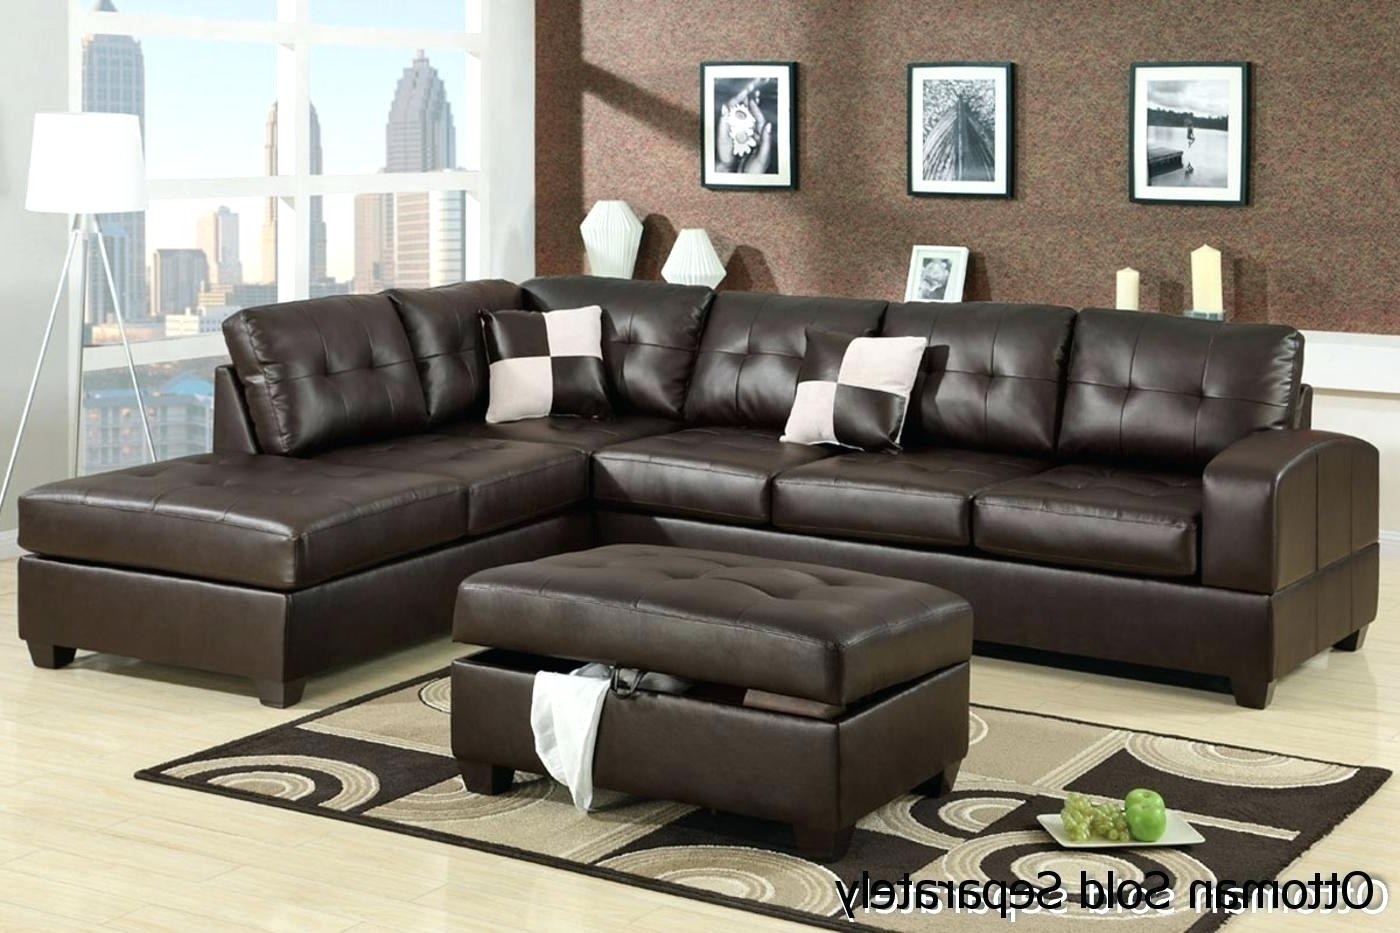 Most Recent Discount Sofa Sectionals Inexpensive Cheap Sectional Sofas Under Intended For Sectional Sofas Under (View 7 of 20)